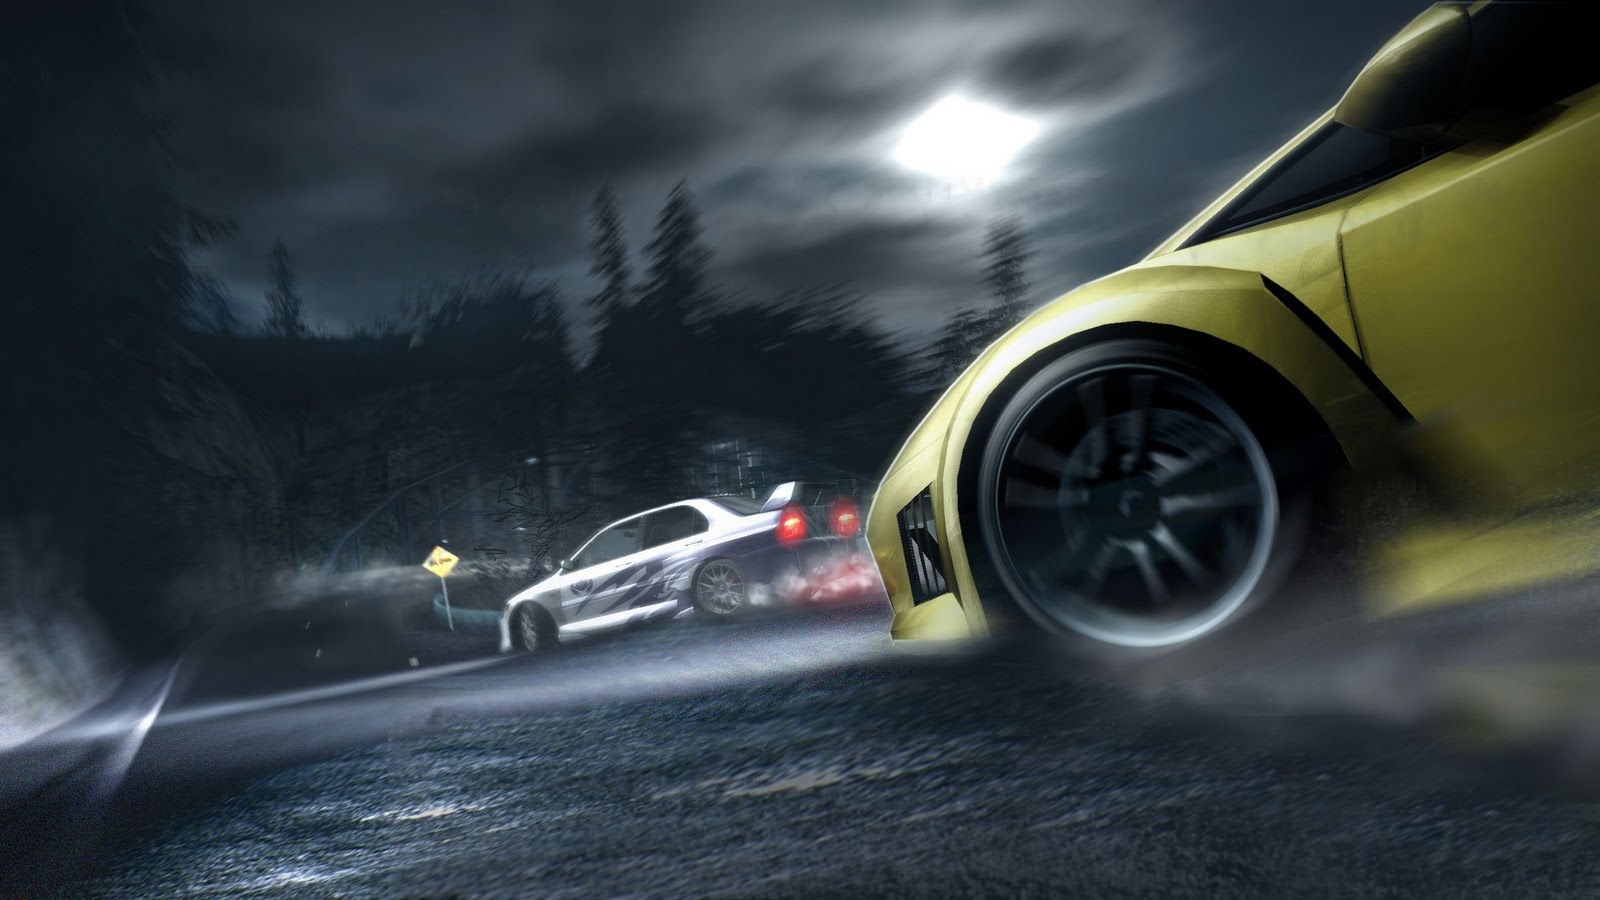 WallpaperfreekS: HD Need For Speed Carbon Wallapapers ...